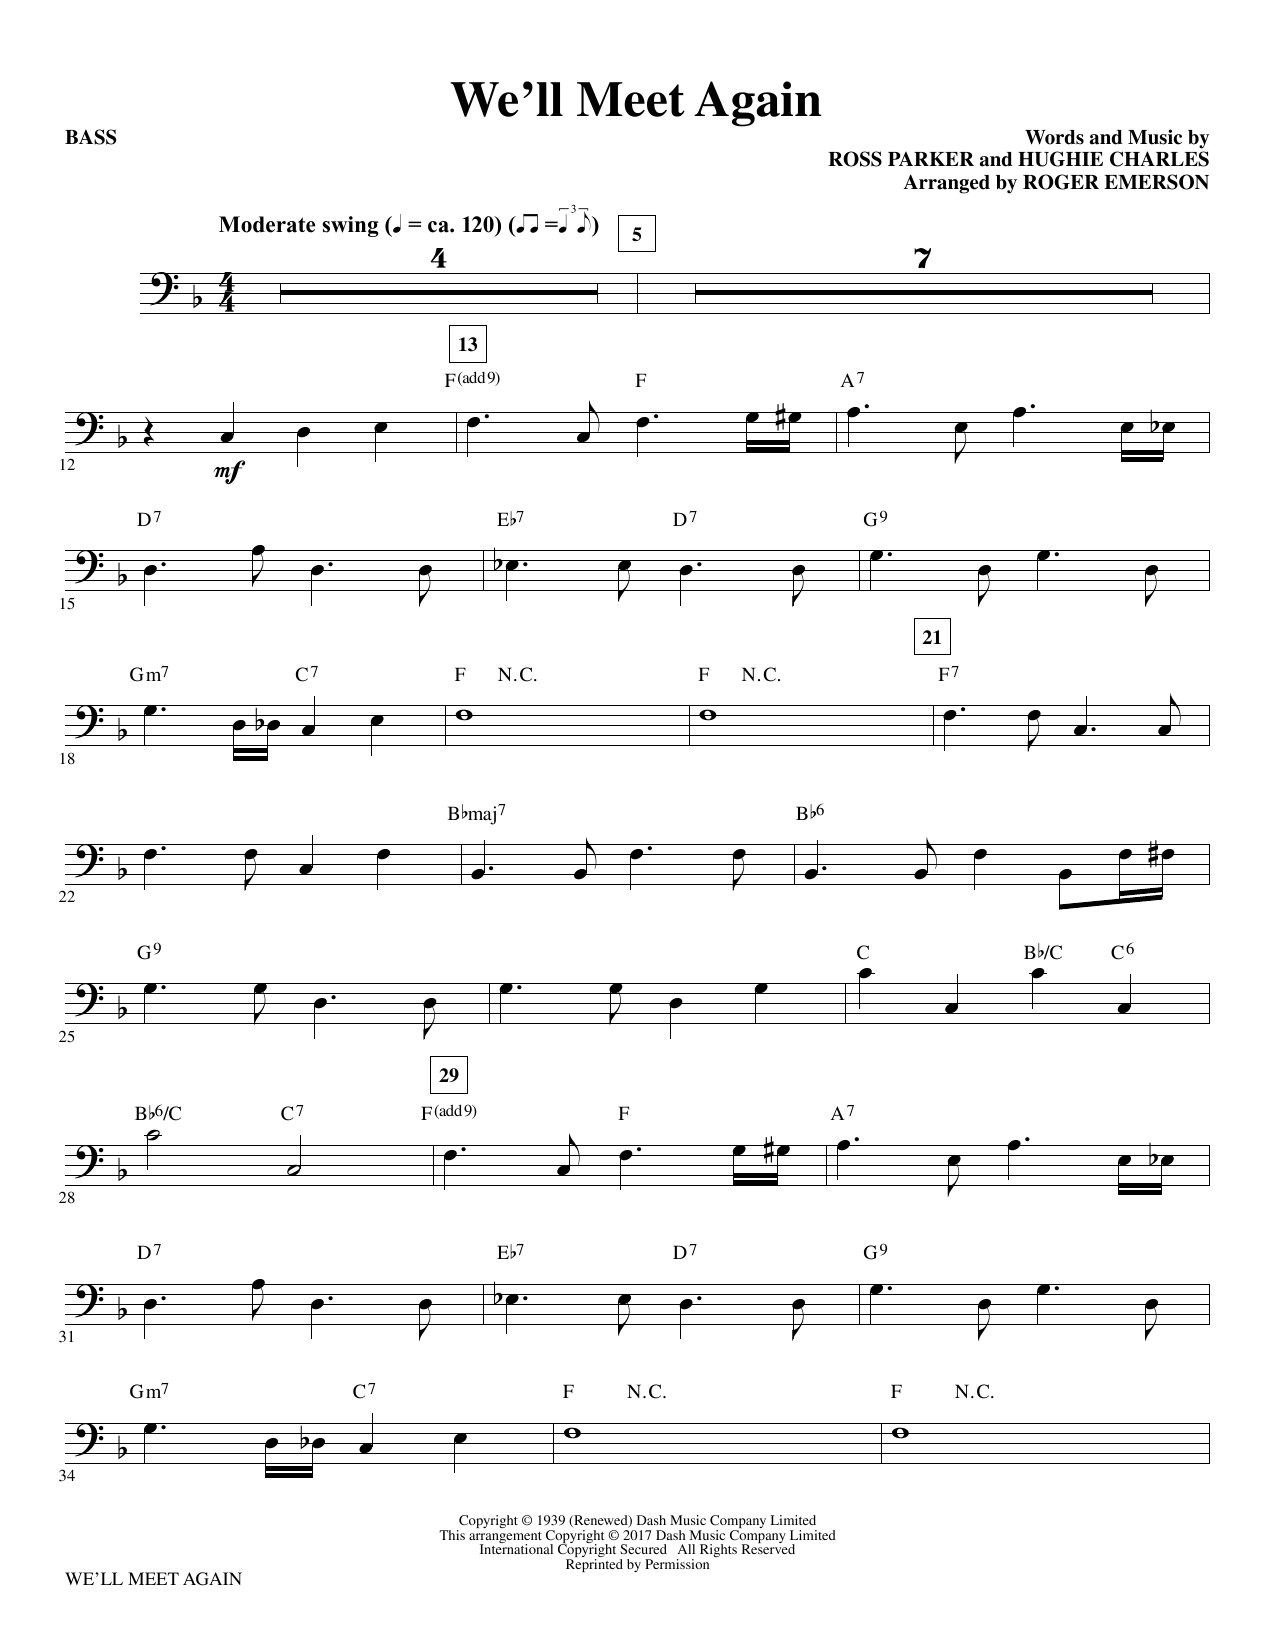 We'll Meet Again (arr. Roger Emerson) - Bass Sheet Music